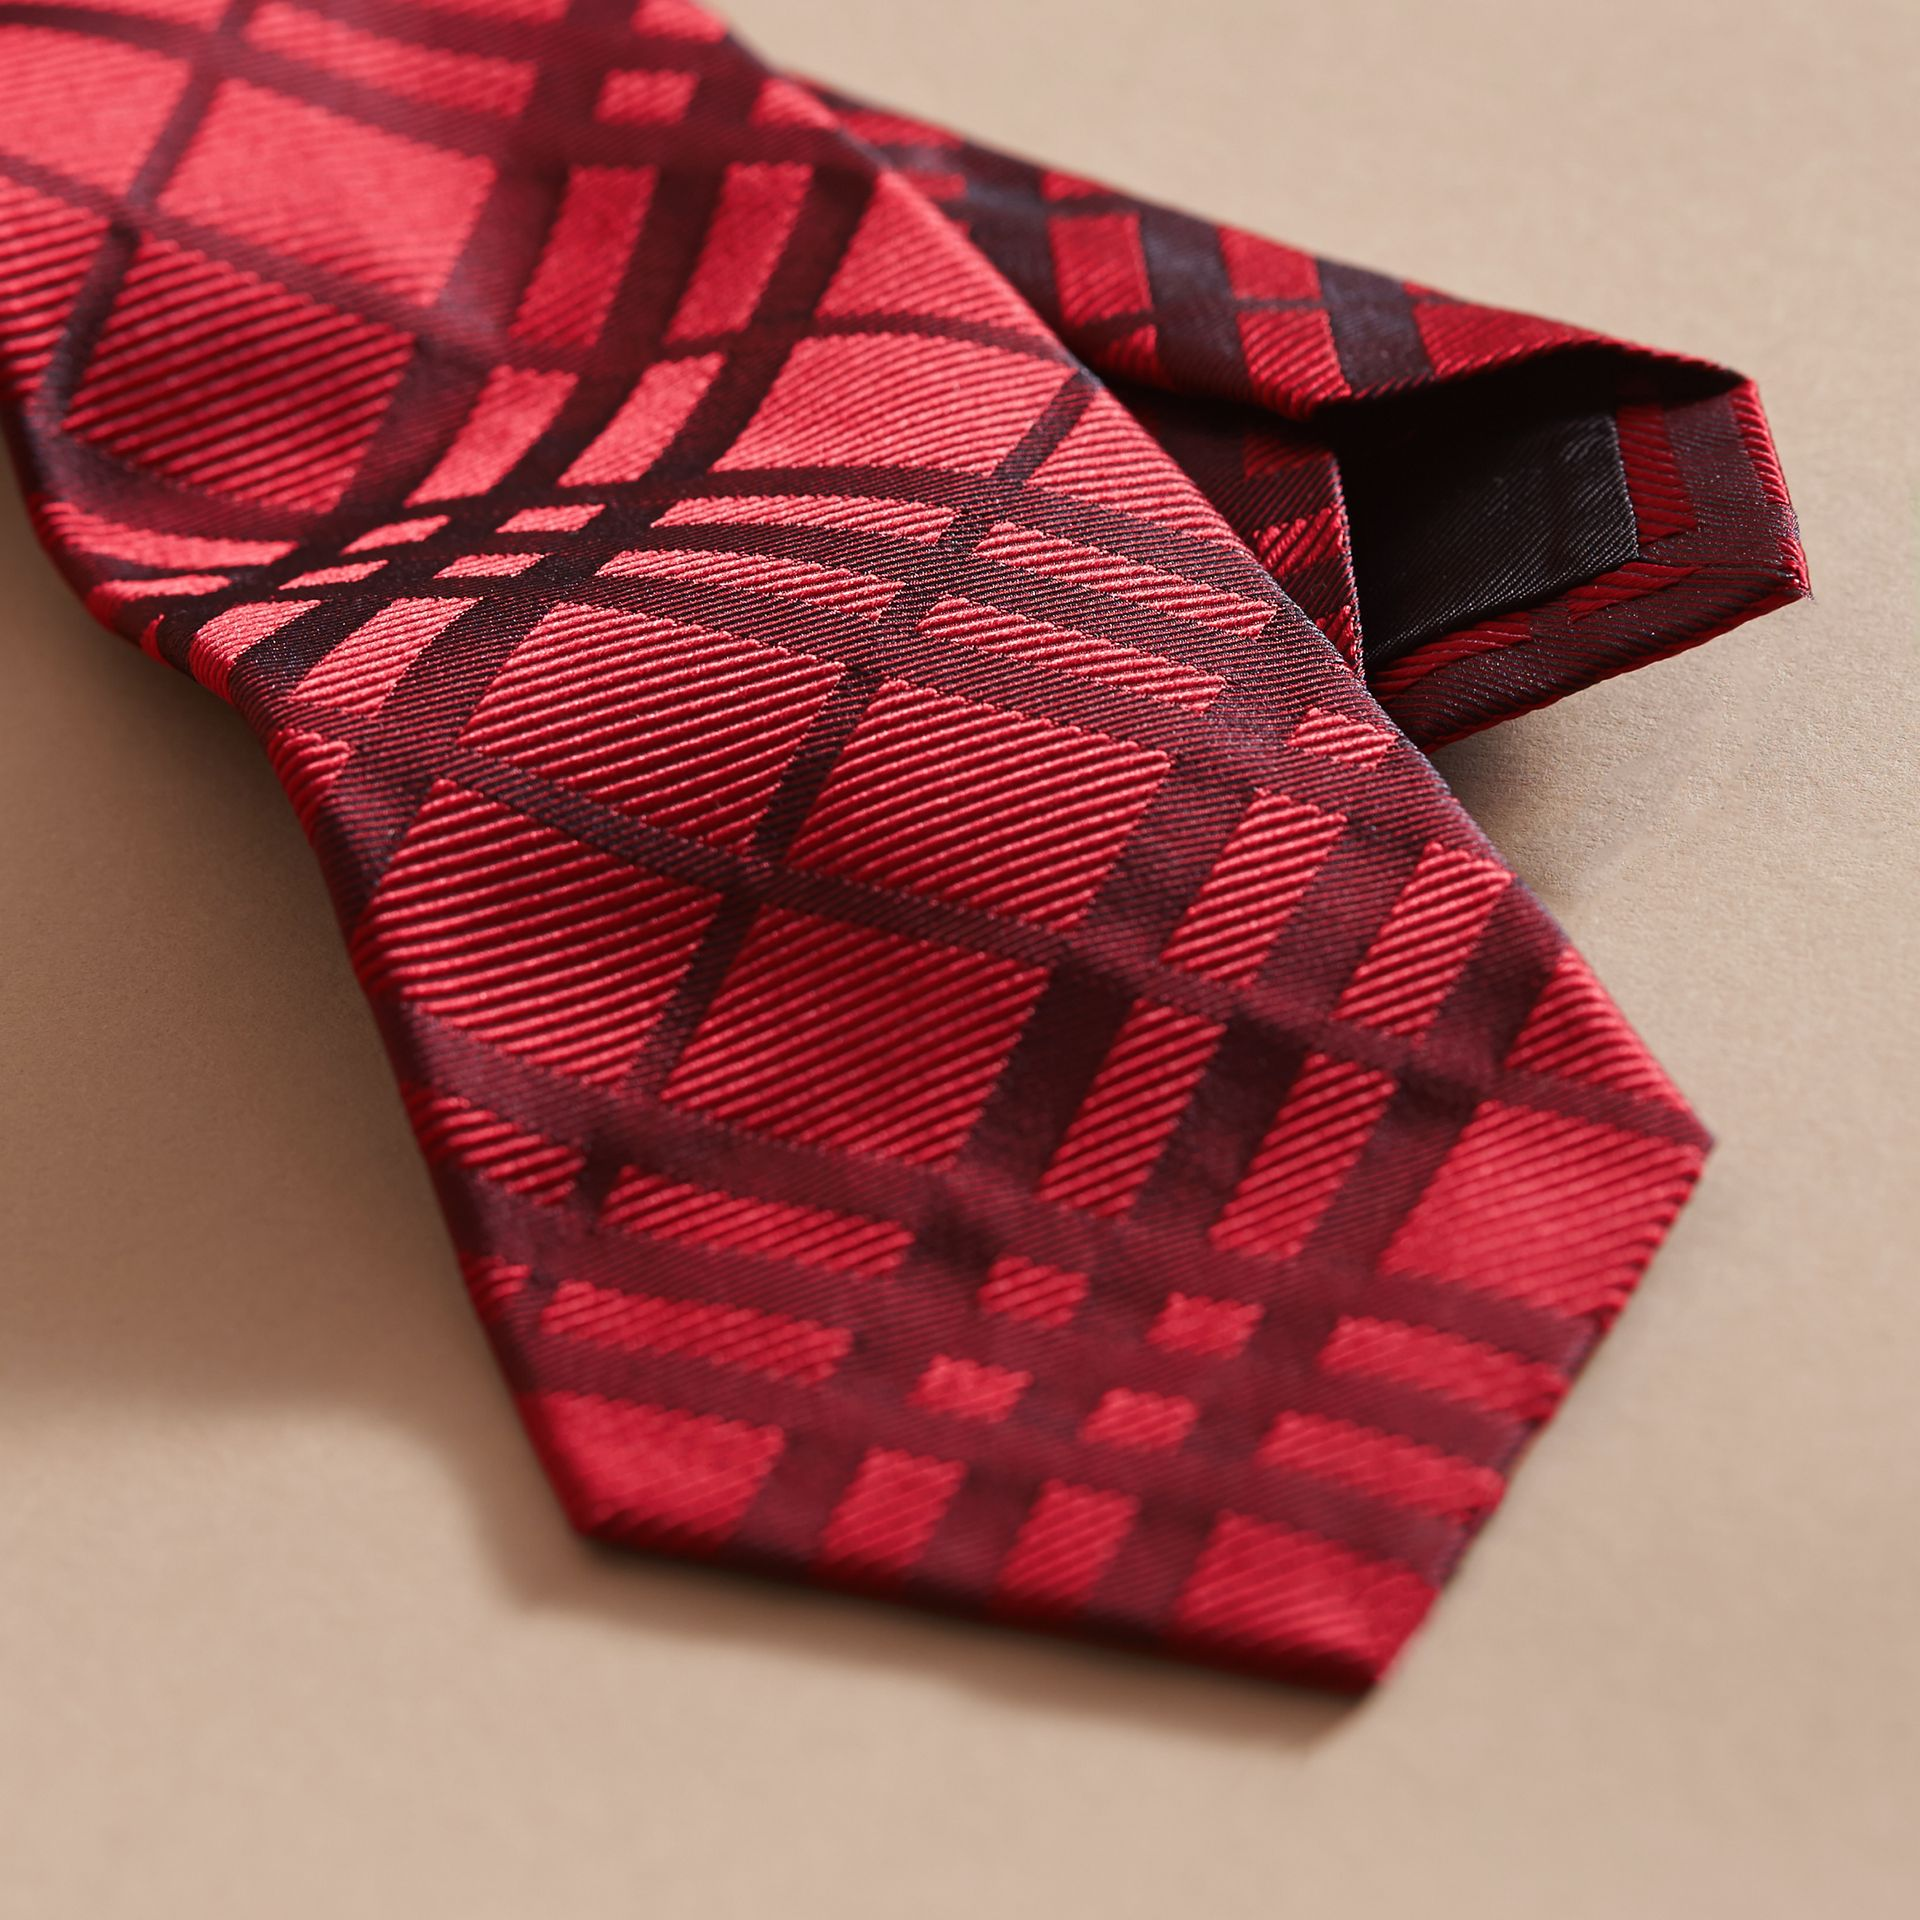 Modern Cut Check Silk Jacquard Tie in Parade Red - Men | Burberry - gallery image 2